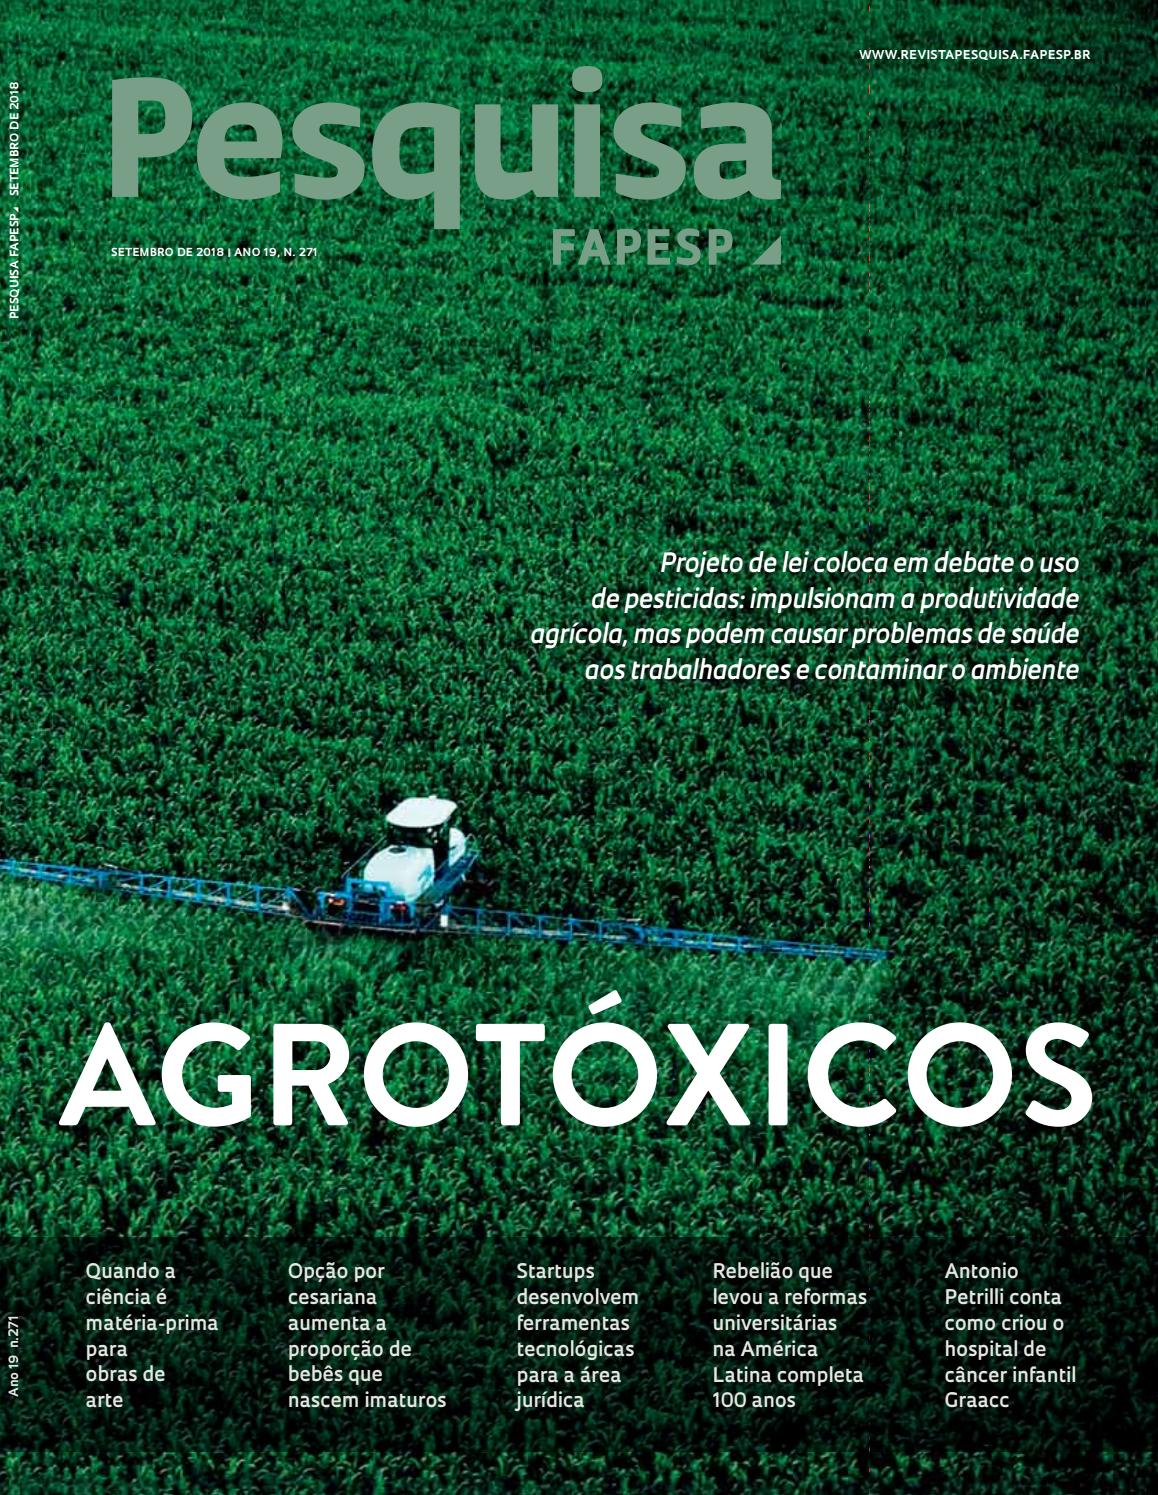 bbe6ff4dc0 Agrotóxicos by Pesquisa Fapesp - issuu